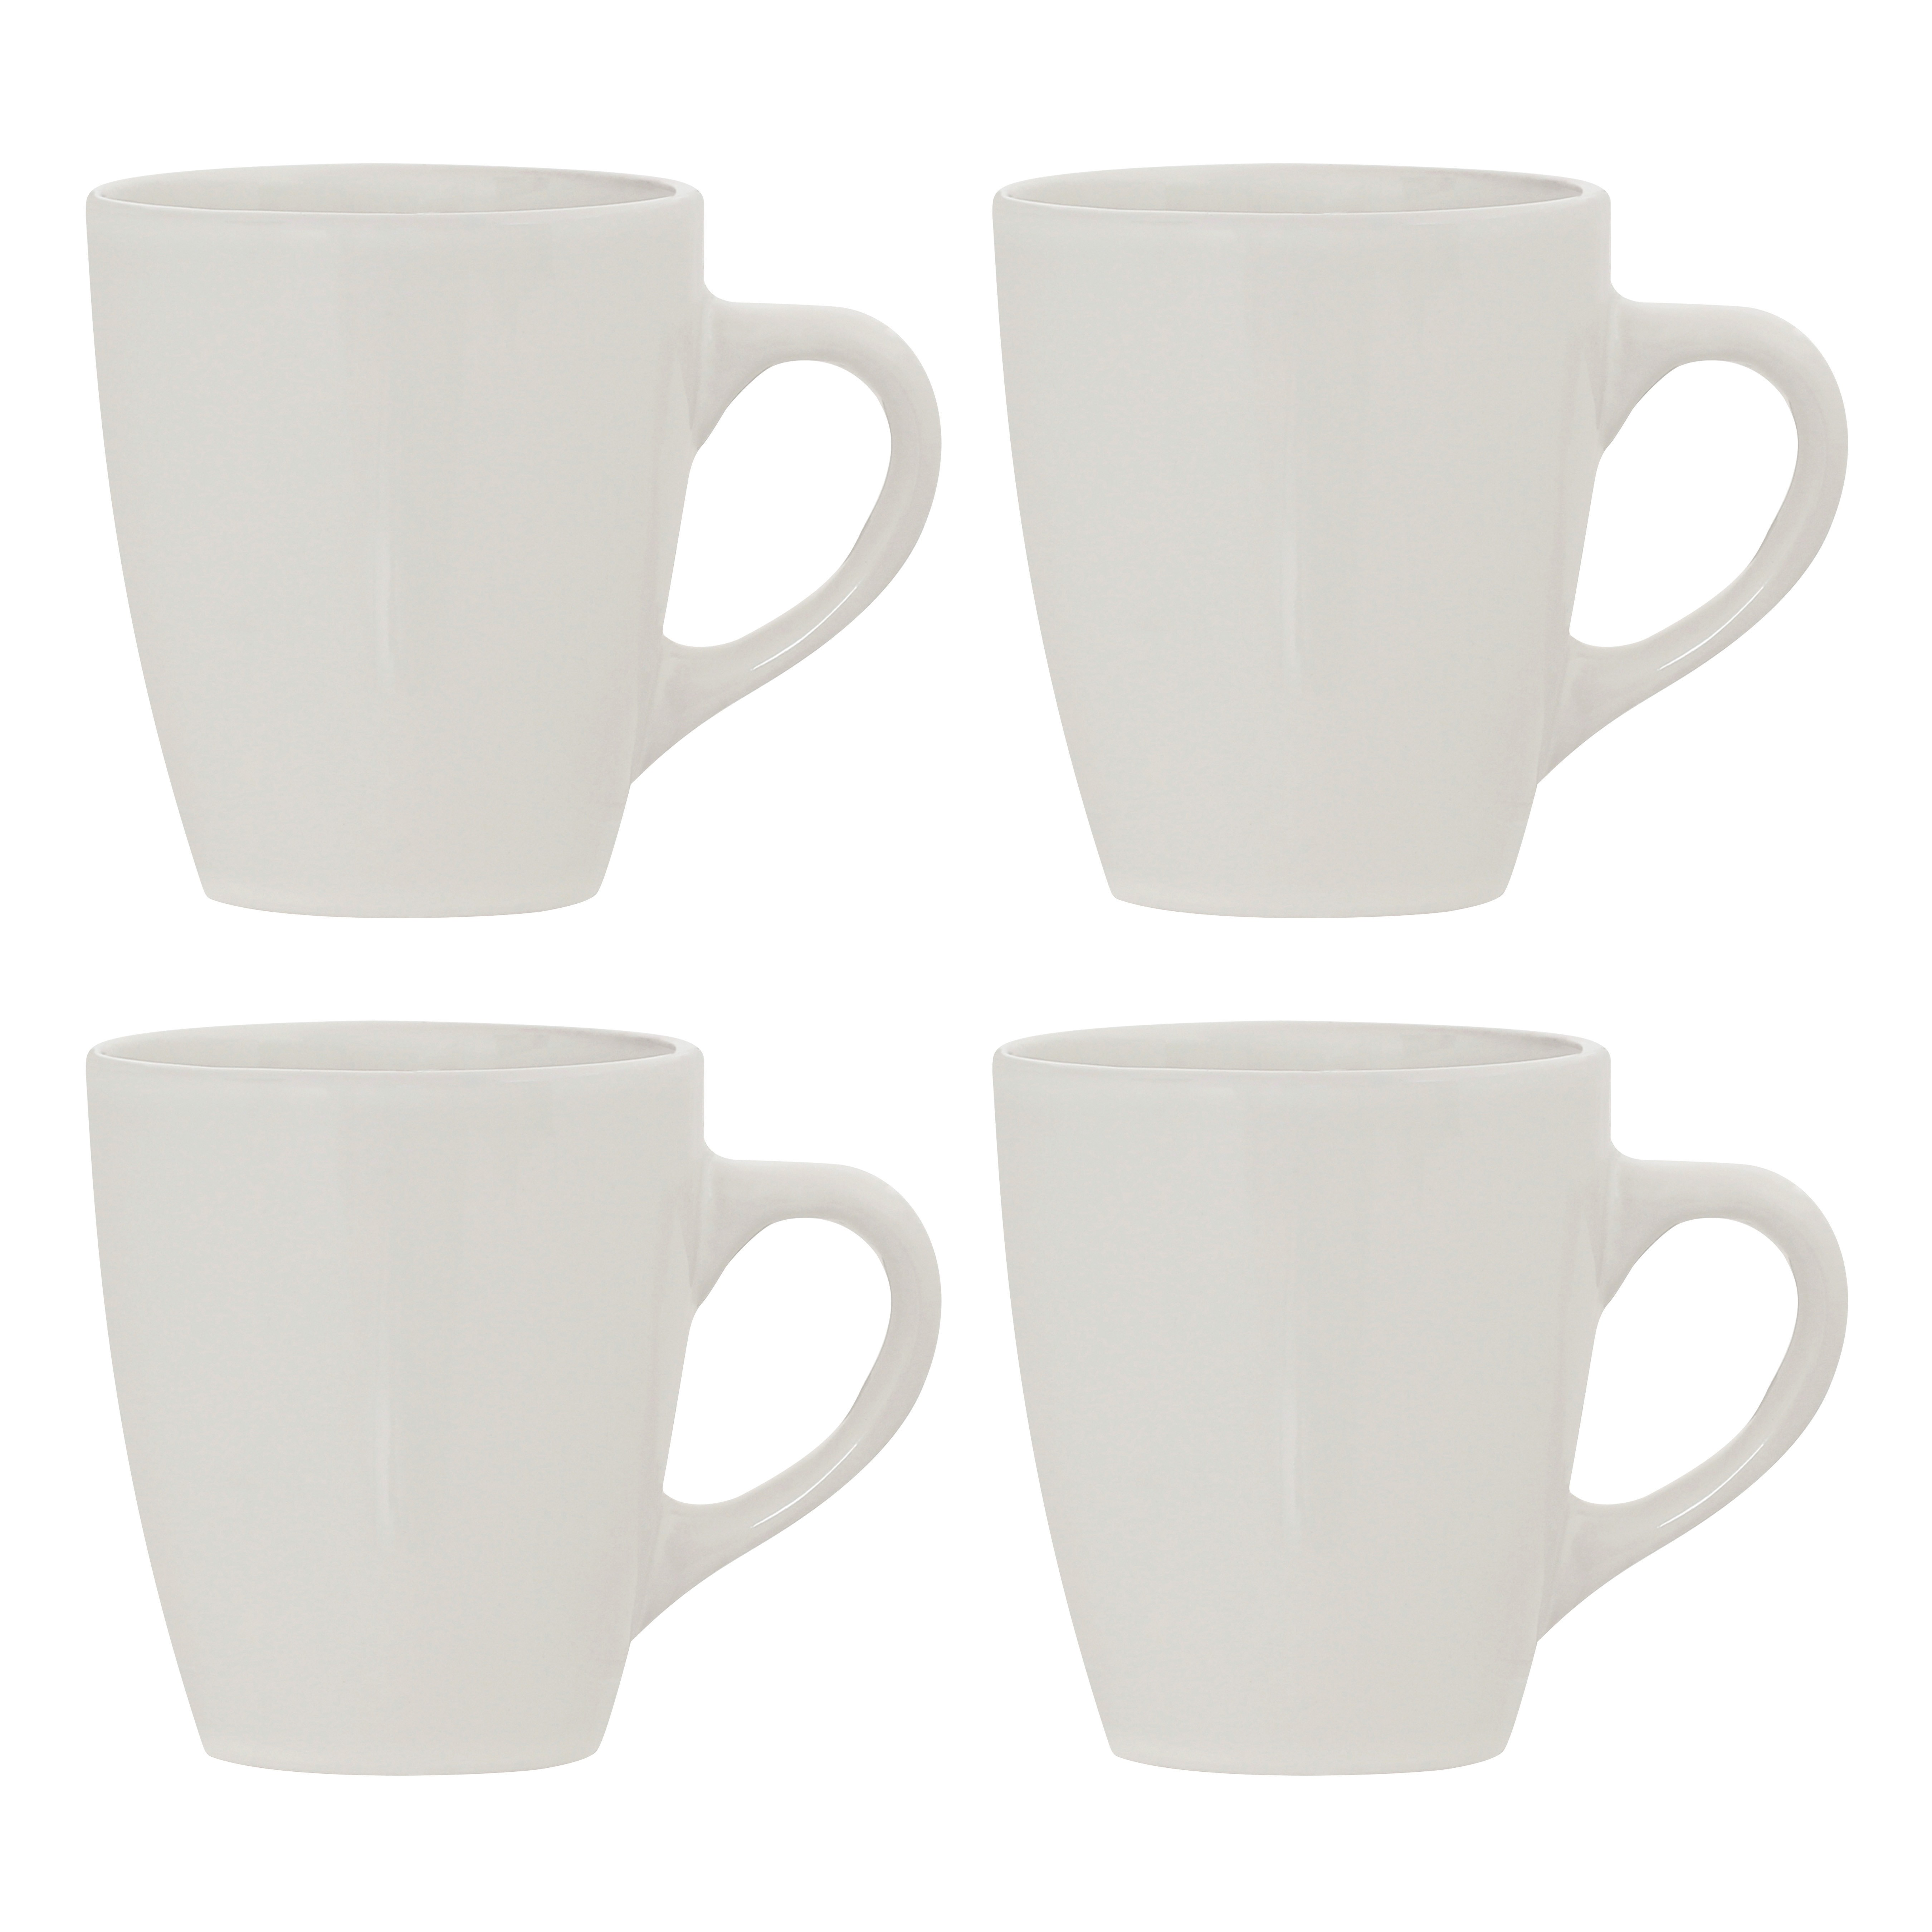 Set of 4, Sienna Ivory Stoneware Mugs